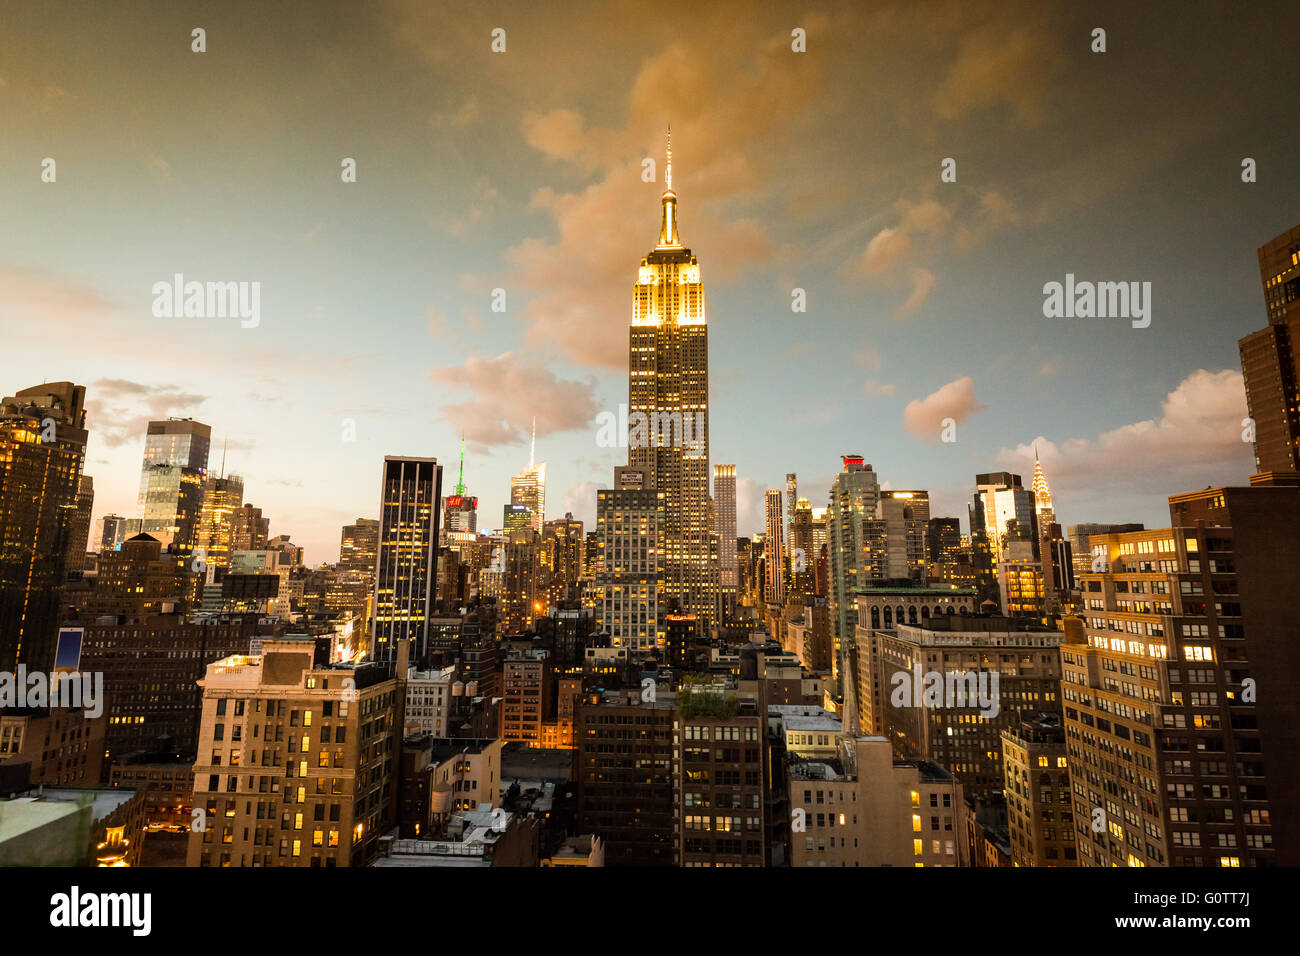 NEW YORK - AUGUST 23: View to Midtown Manhattan with the famous Empire State Building at sunset. - Stock Image